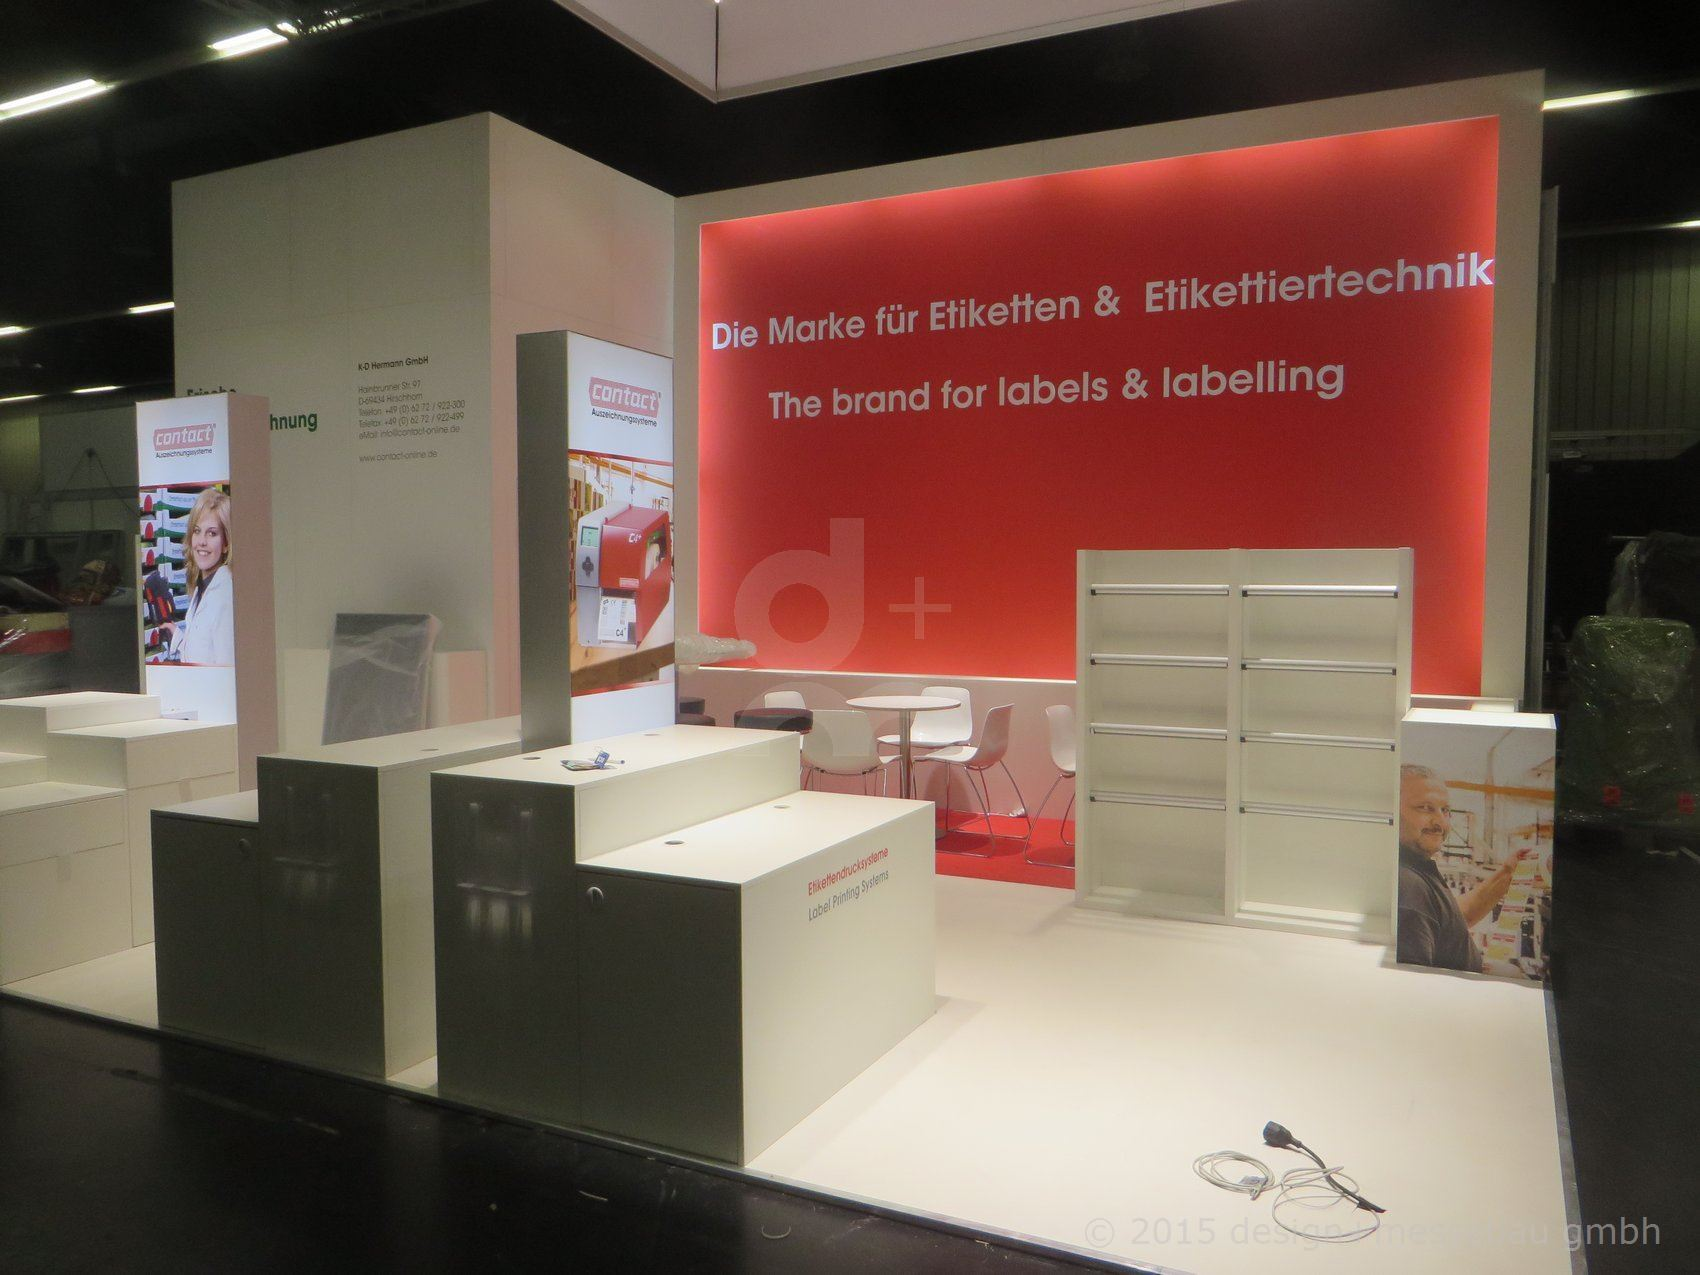 contact - Biofach 2017